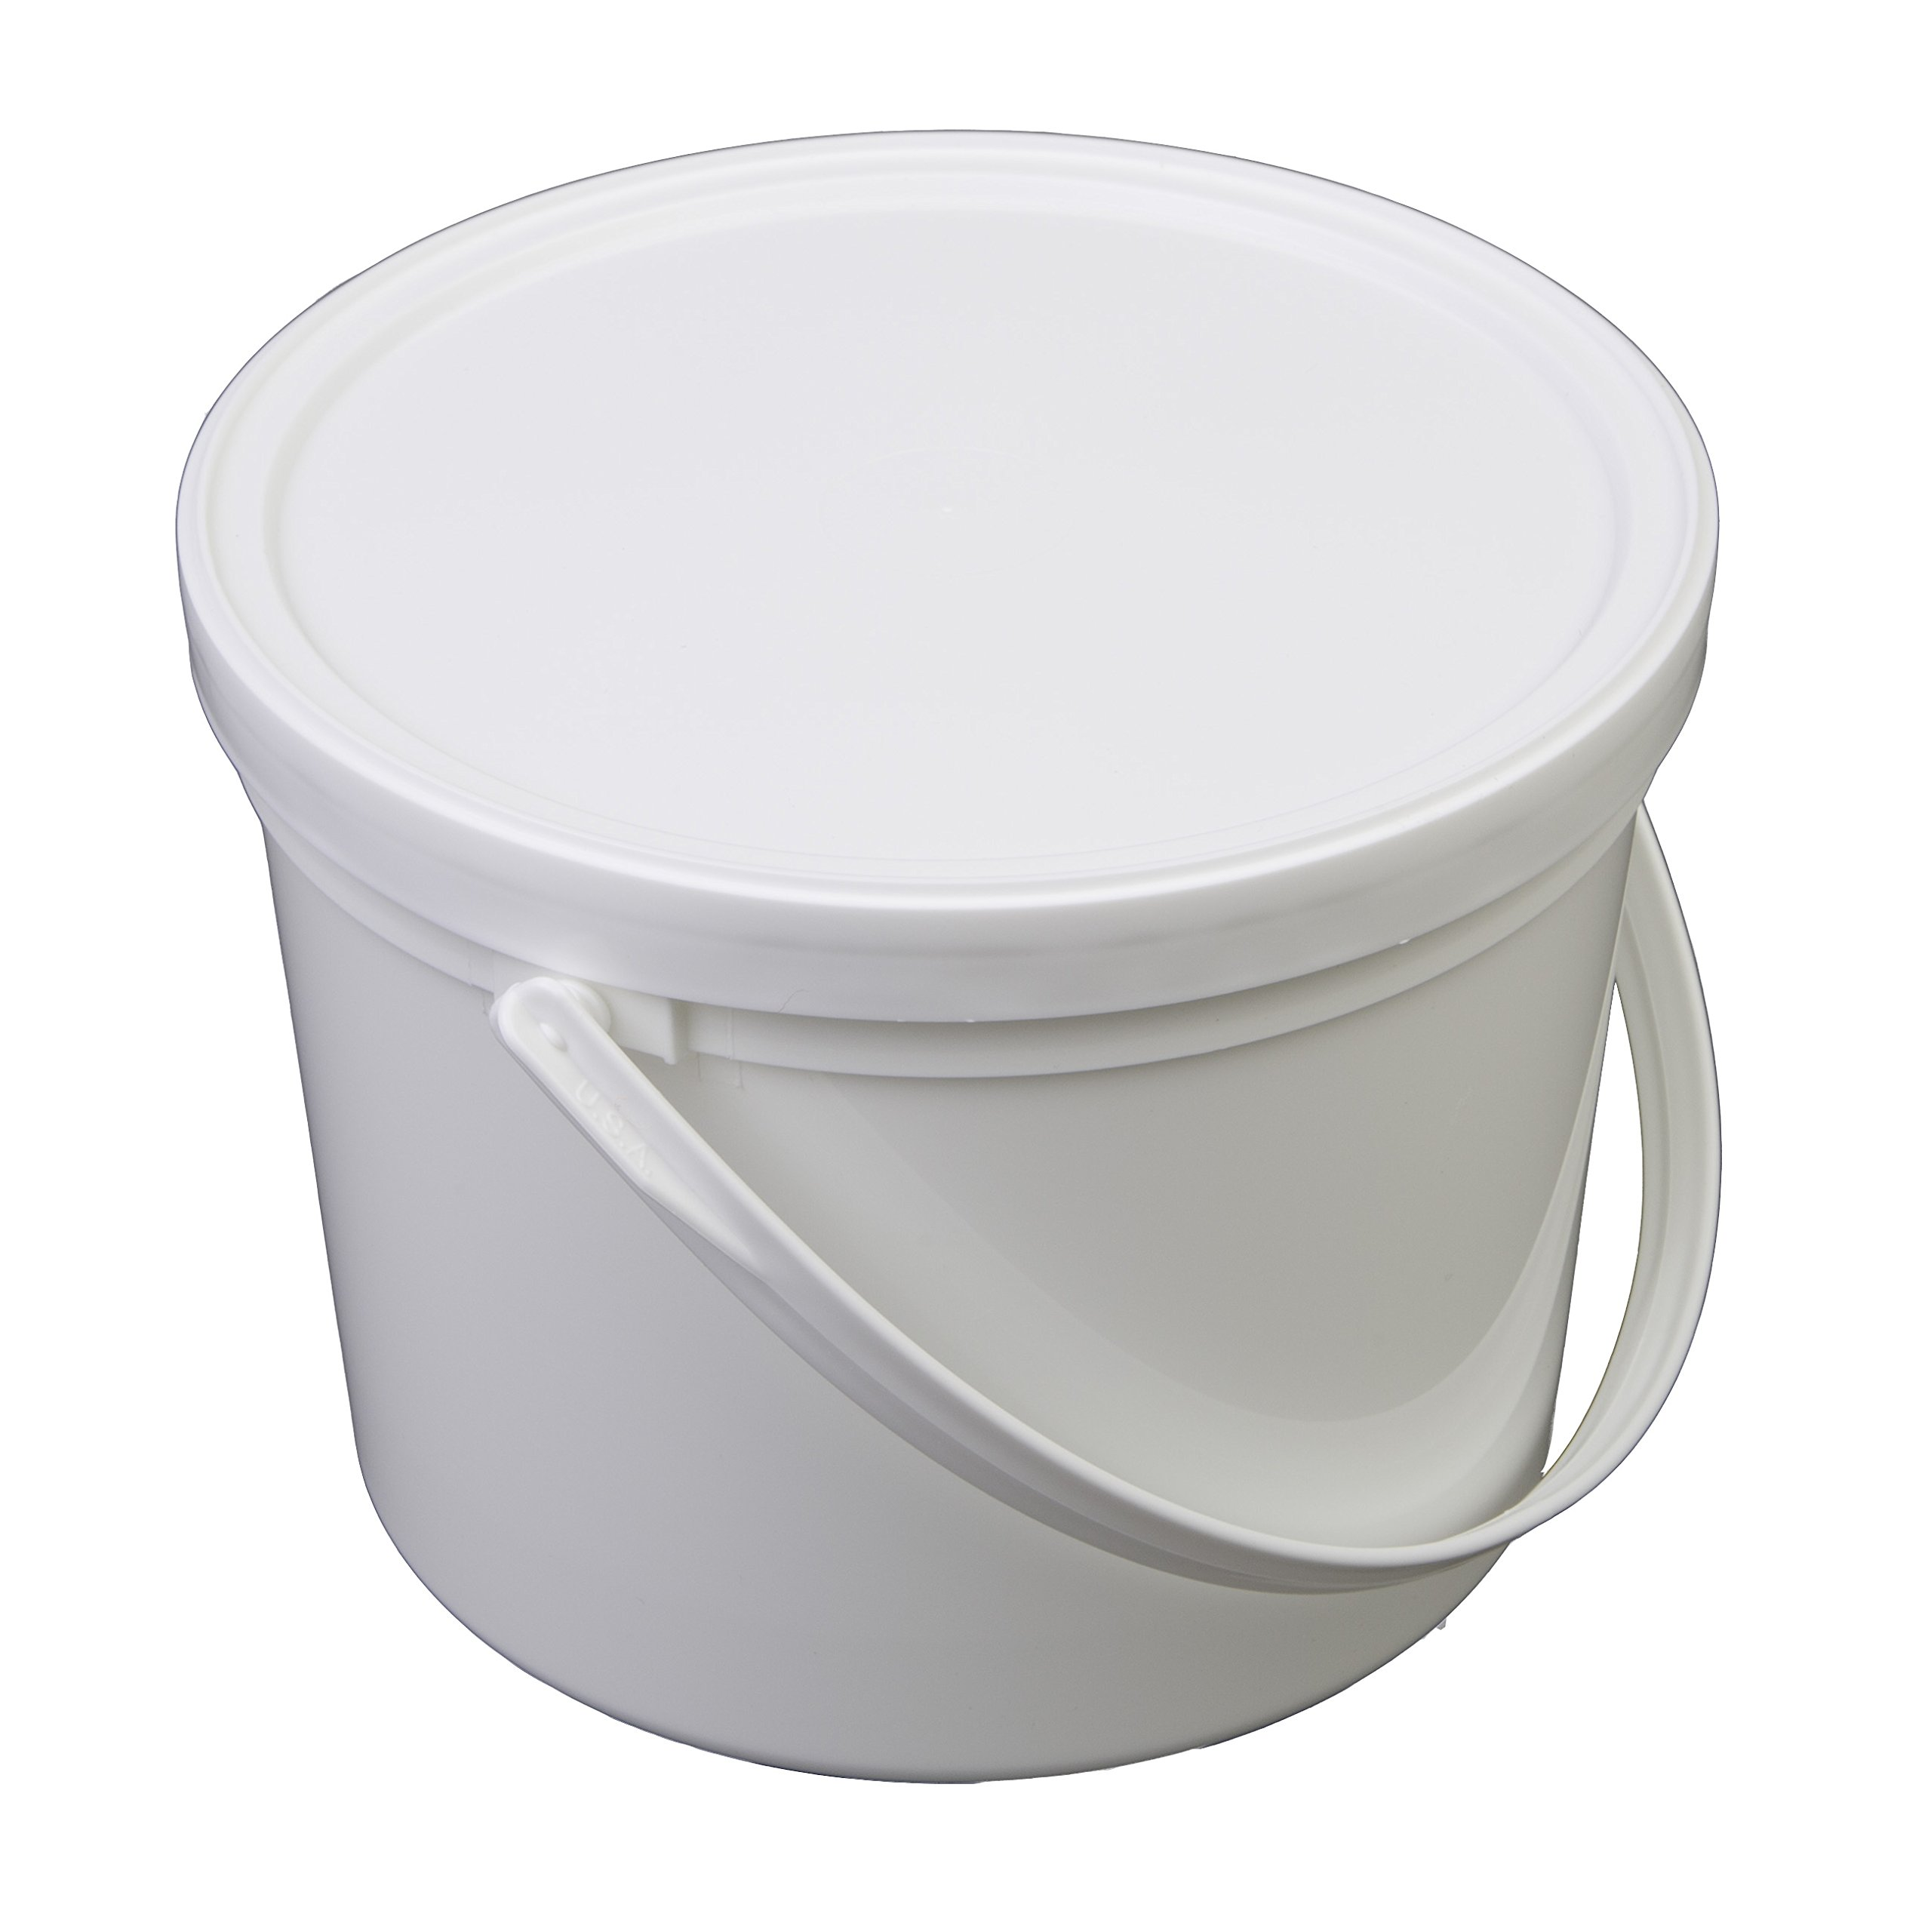 Consolidated Plastics Pail with Handle, Polypropylene, 1.5 Quart, White, 10 Piece